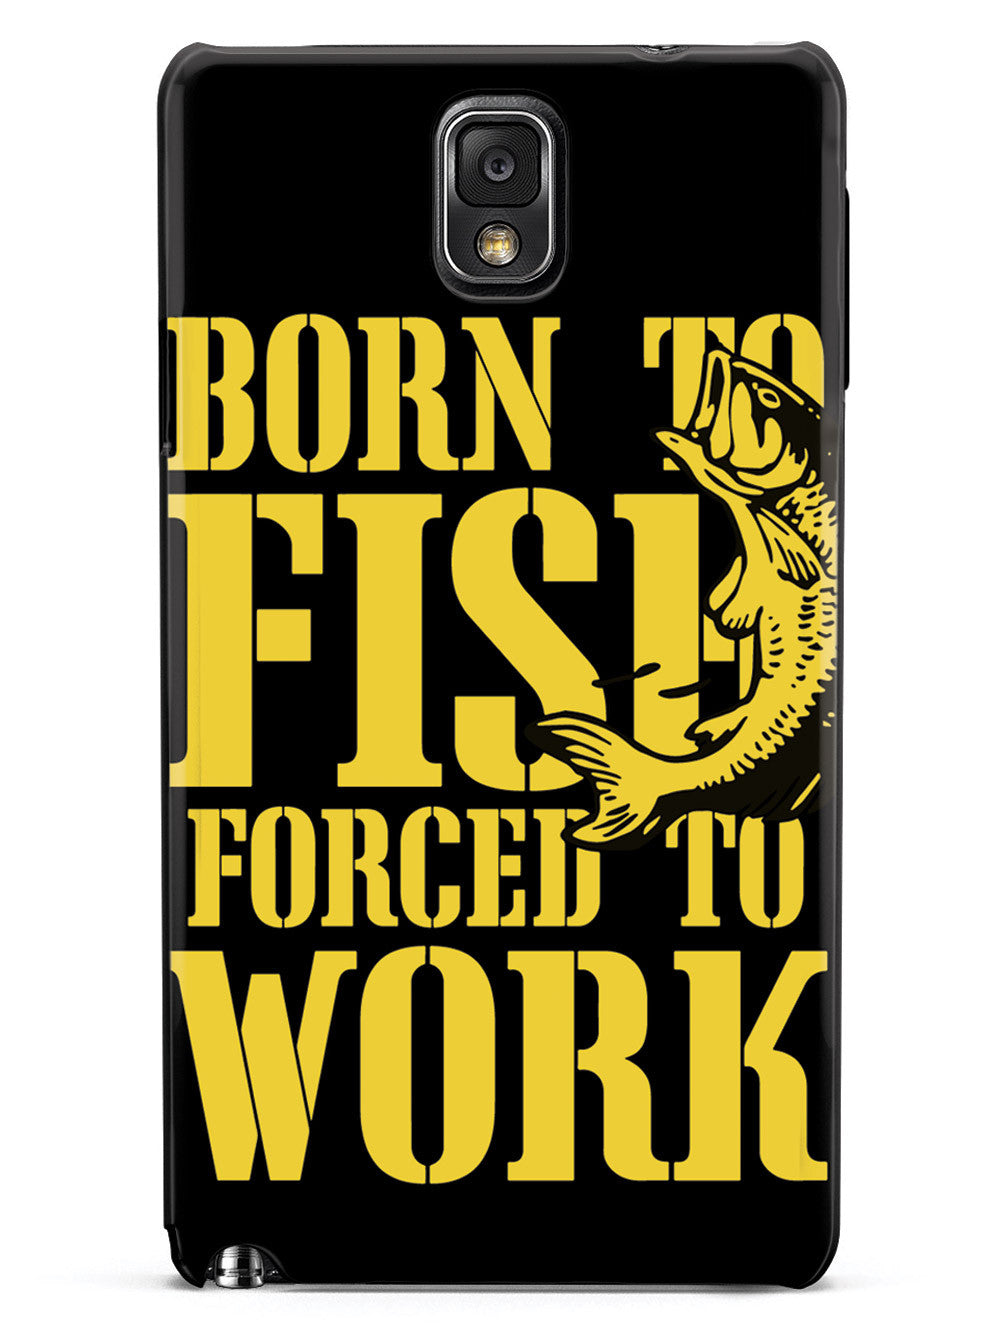 Born To Fish Forced To Work - Black Case